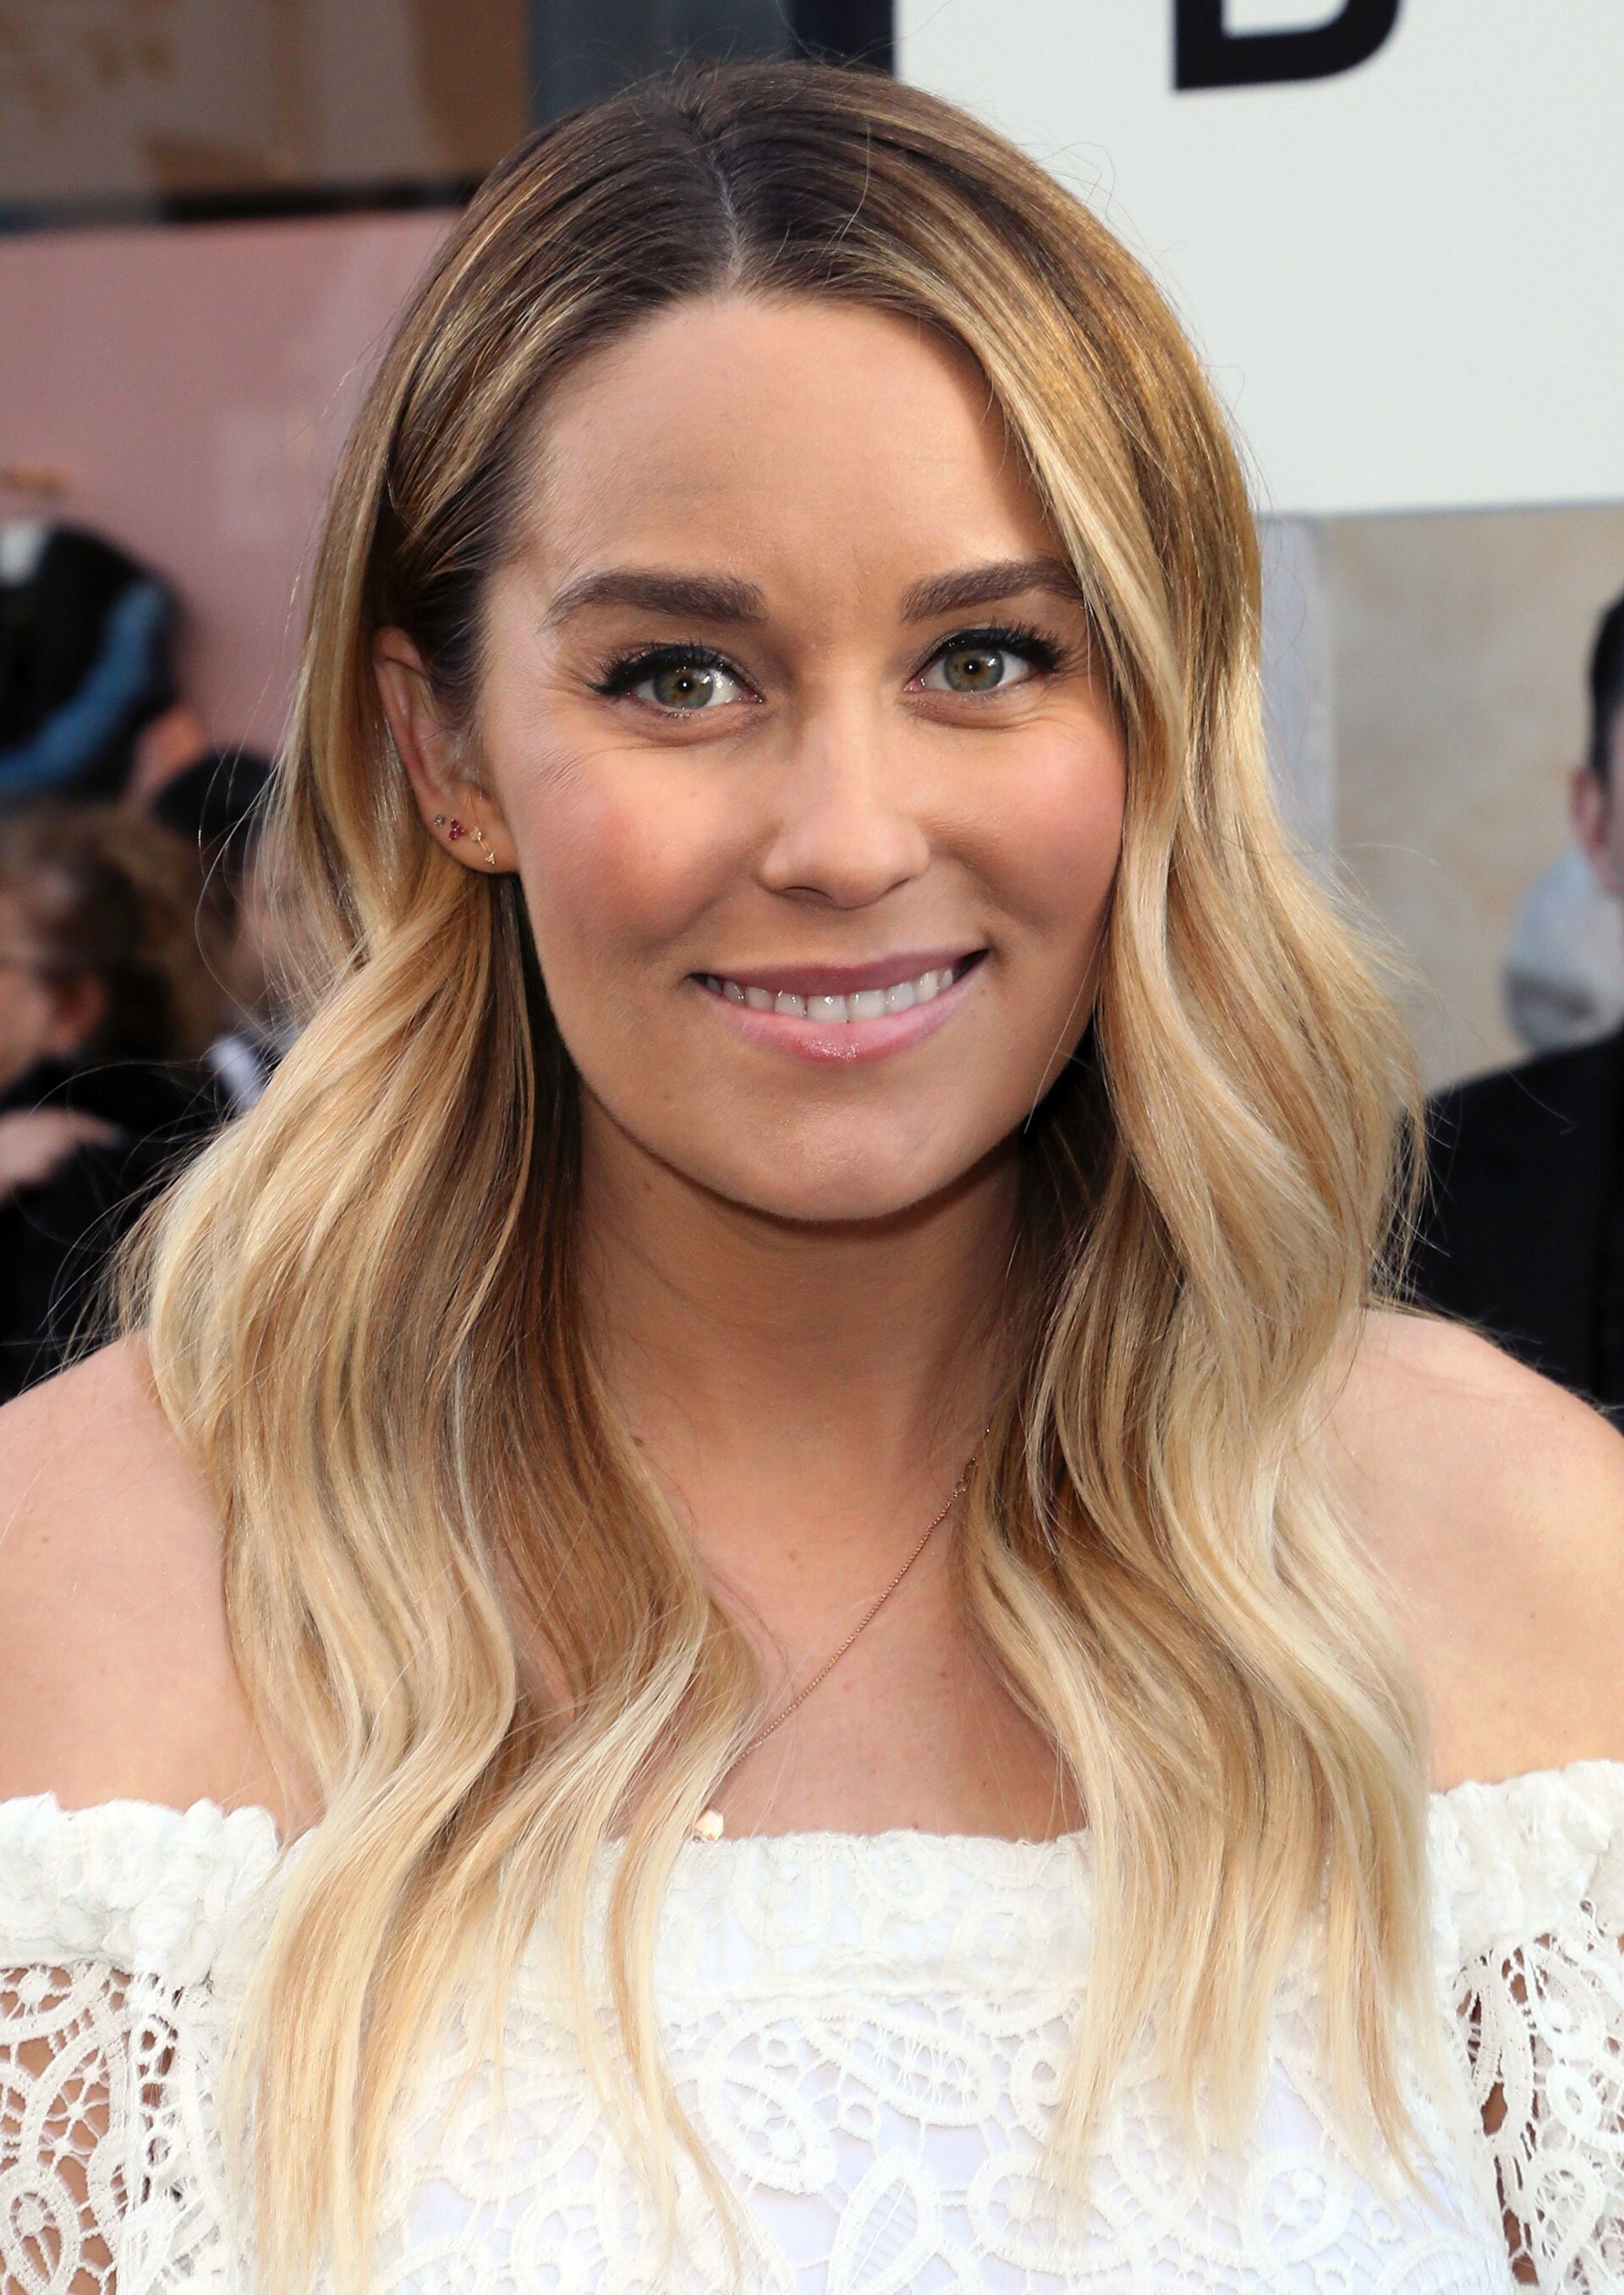 Lauren Conrad This Is Lauren Conrad S Pregnancy Fitness Routine Vogue Australia